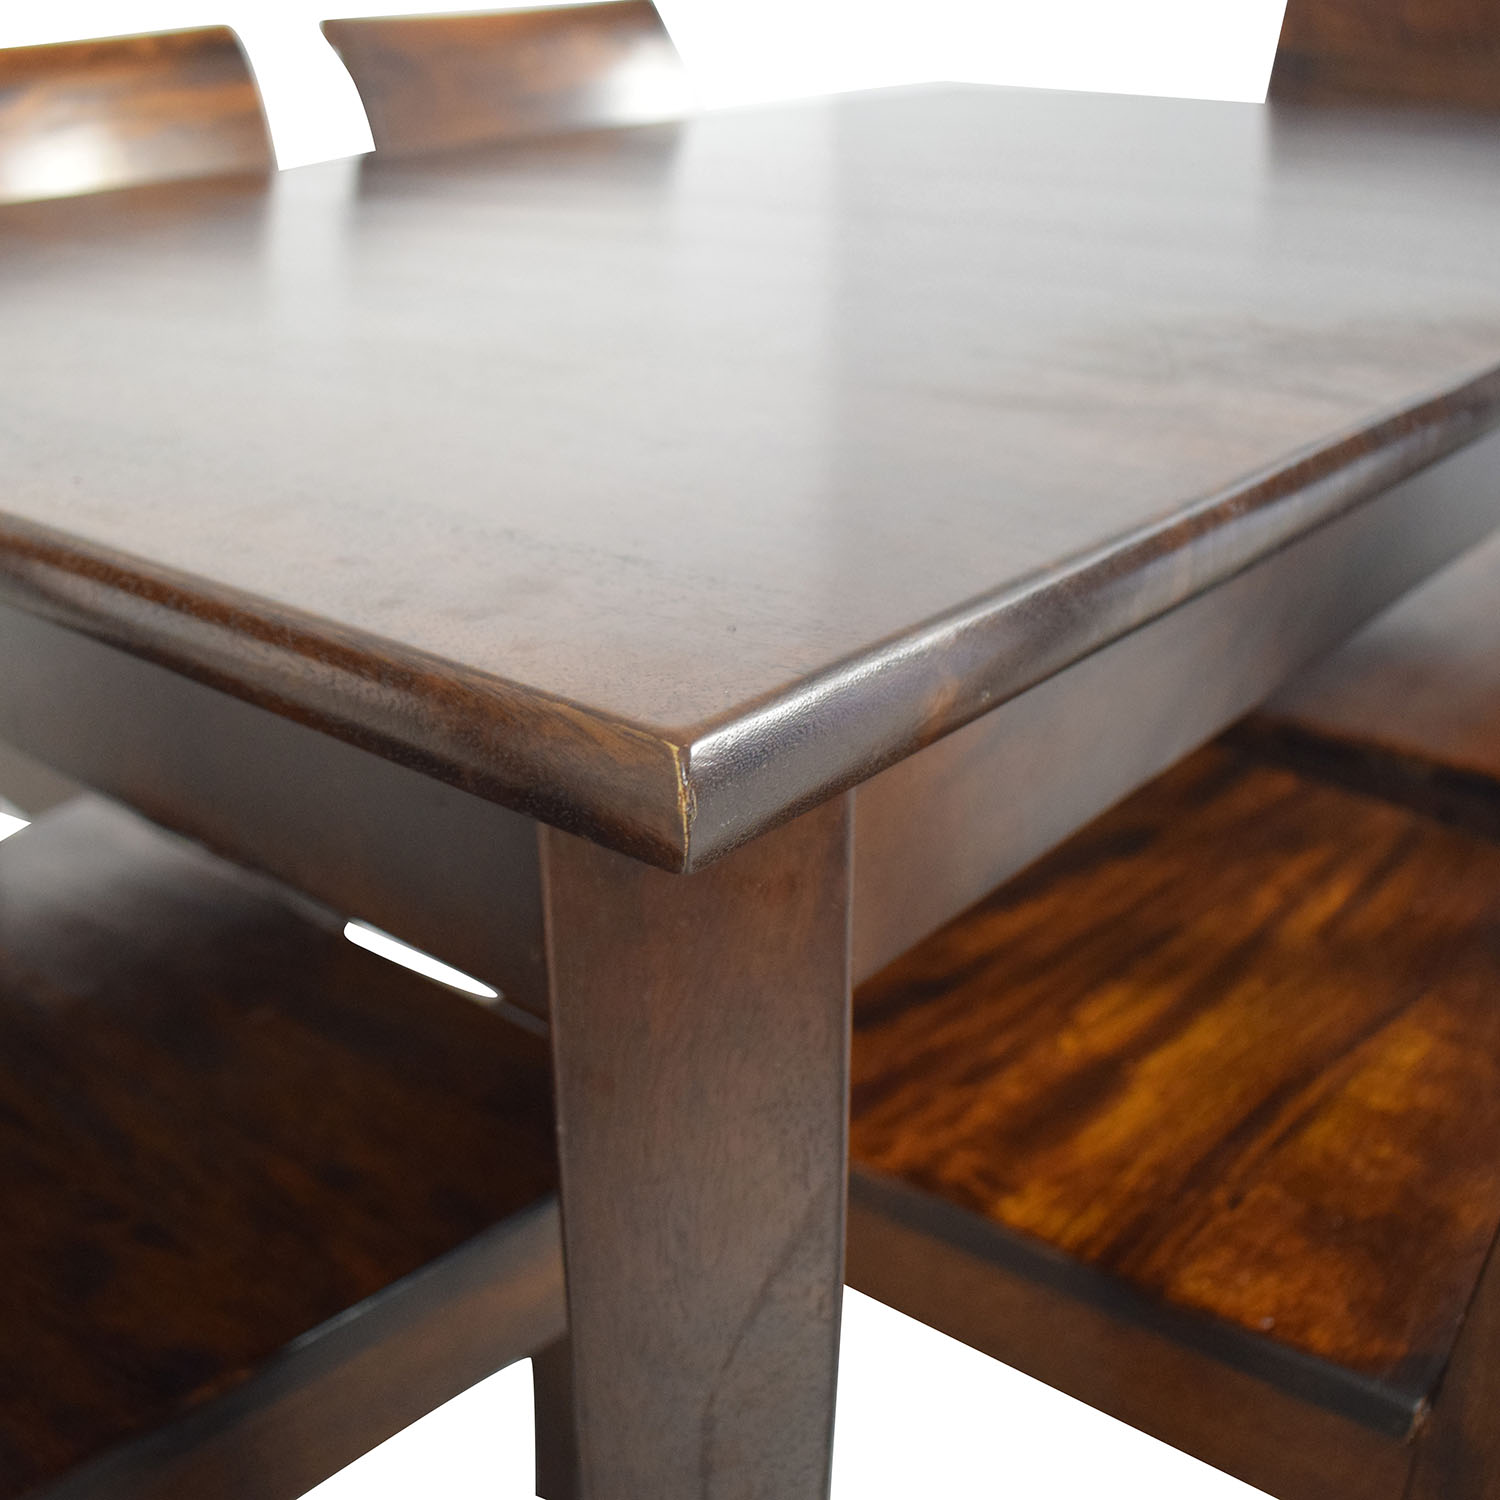 Crate & Barrel Crate & Barrel Cabria Table Dining Set